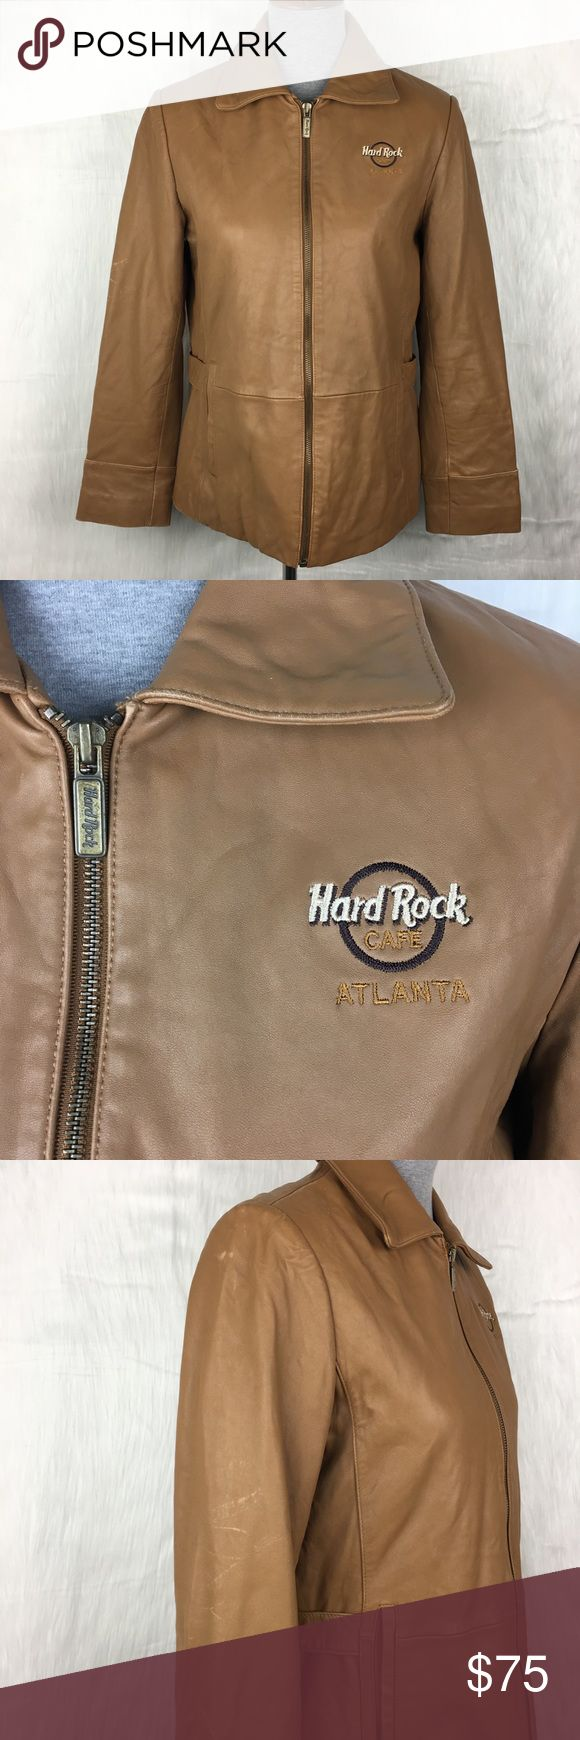 """Hard Rock Cafe 100% Leather Cognac Jacket hard rock cafe atlanta brown 100% leather jacket. adjustable buckles on the waist. two pockets. zip up front. embroidered logo on the chest. animal print lining.  size: women's medium  measurements: bust 19"""" across / length 25"""" / sleeve inseam 17"""" washing instructions: leather or suede expert flaws: marks from wear throughout, see photos discounts: 10% off bundles of 2 items and 15% off bundles of 3+ items Vintage Jackets & Coats"""